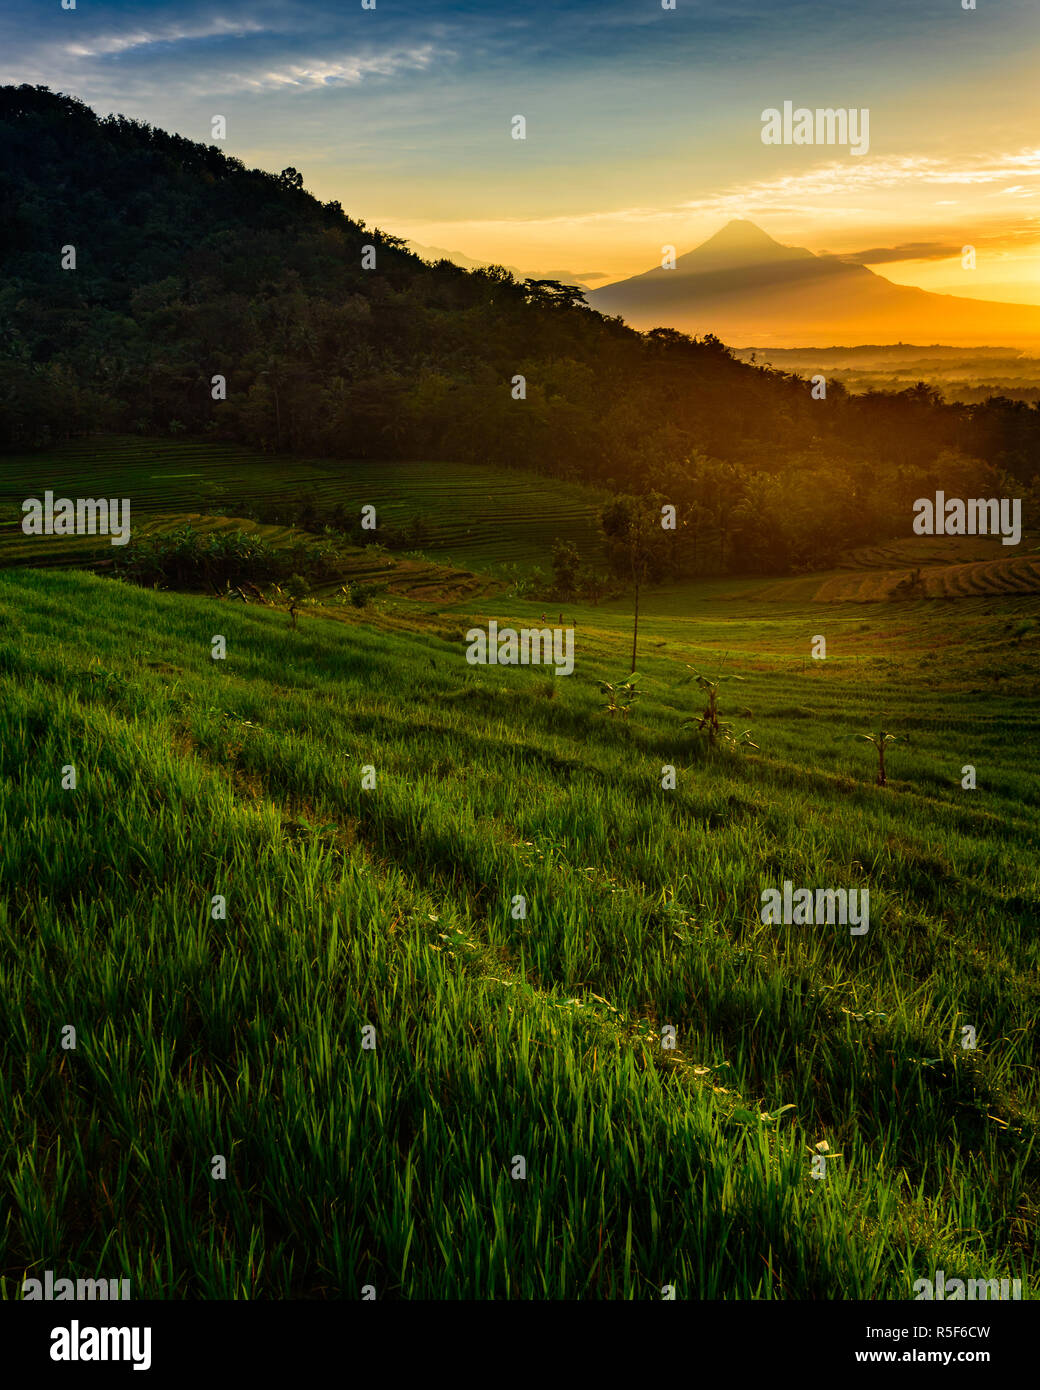 Beautiful sunrise in paddy terrace with merapi mountain in the background - Stock Image